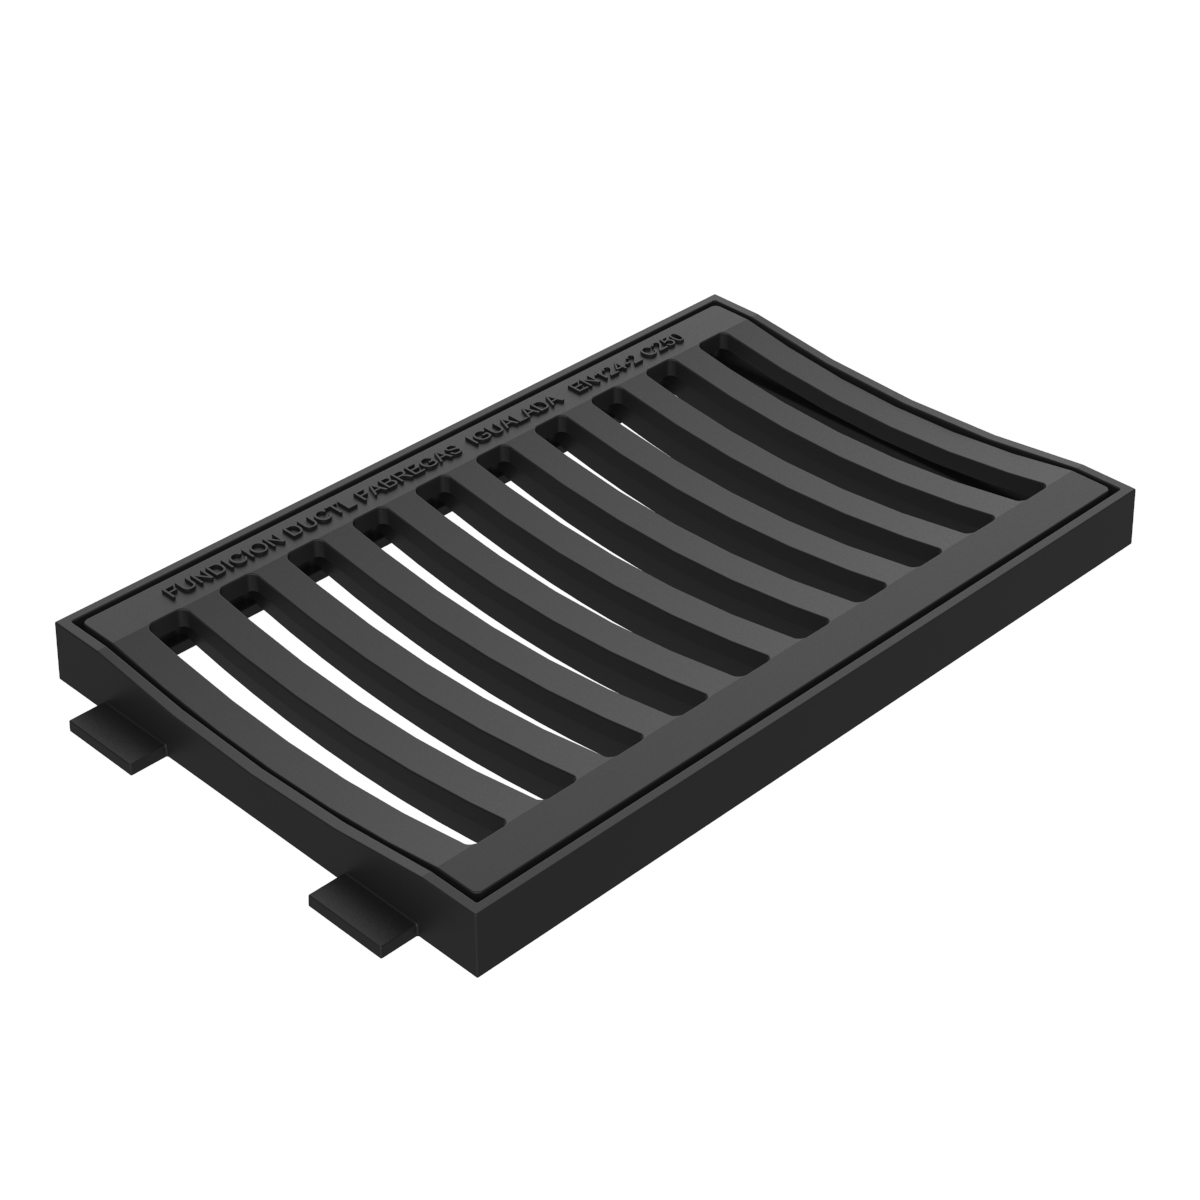 Concave scupper grate and frame of ductile casting B-22BD